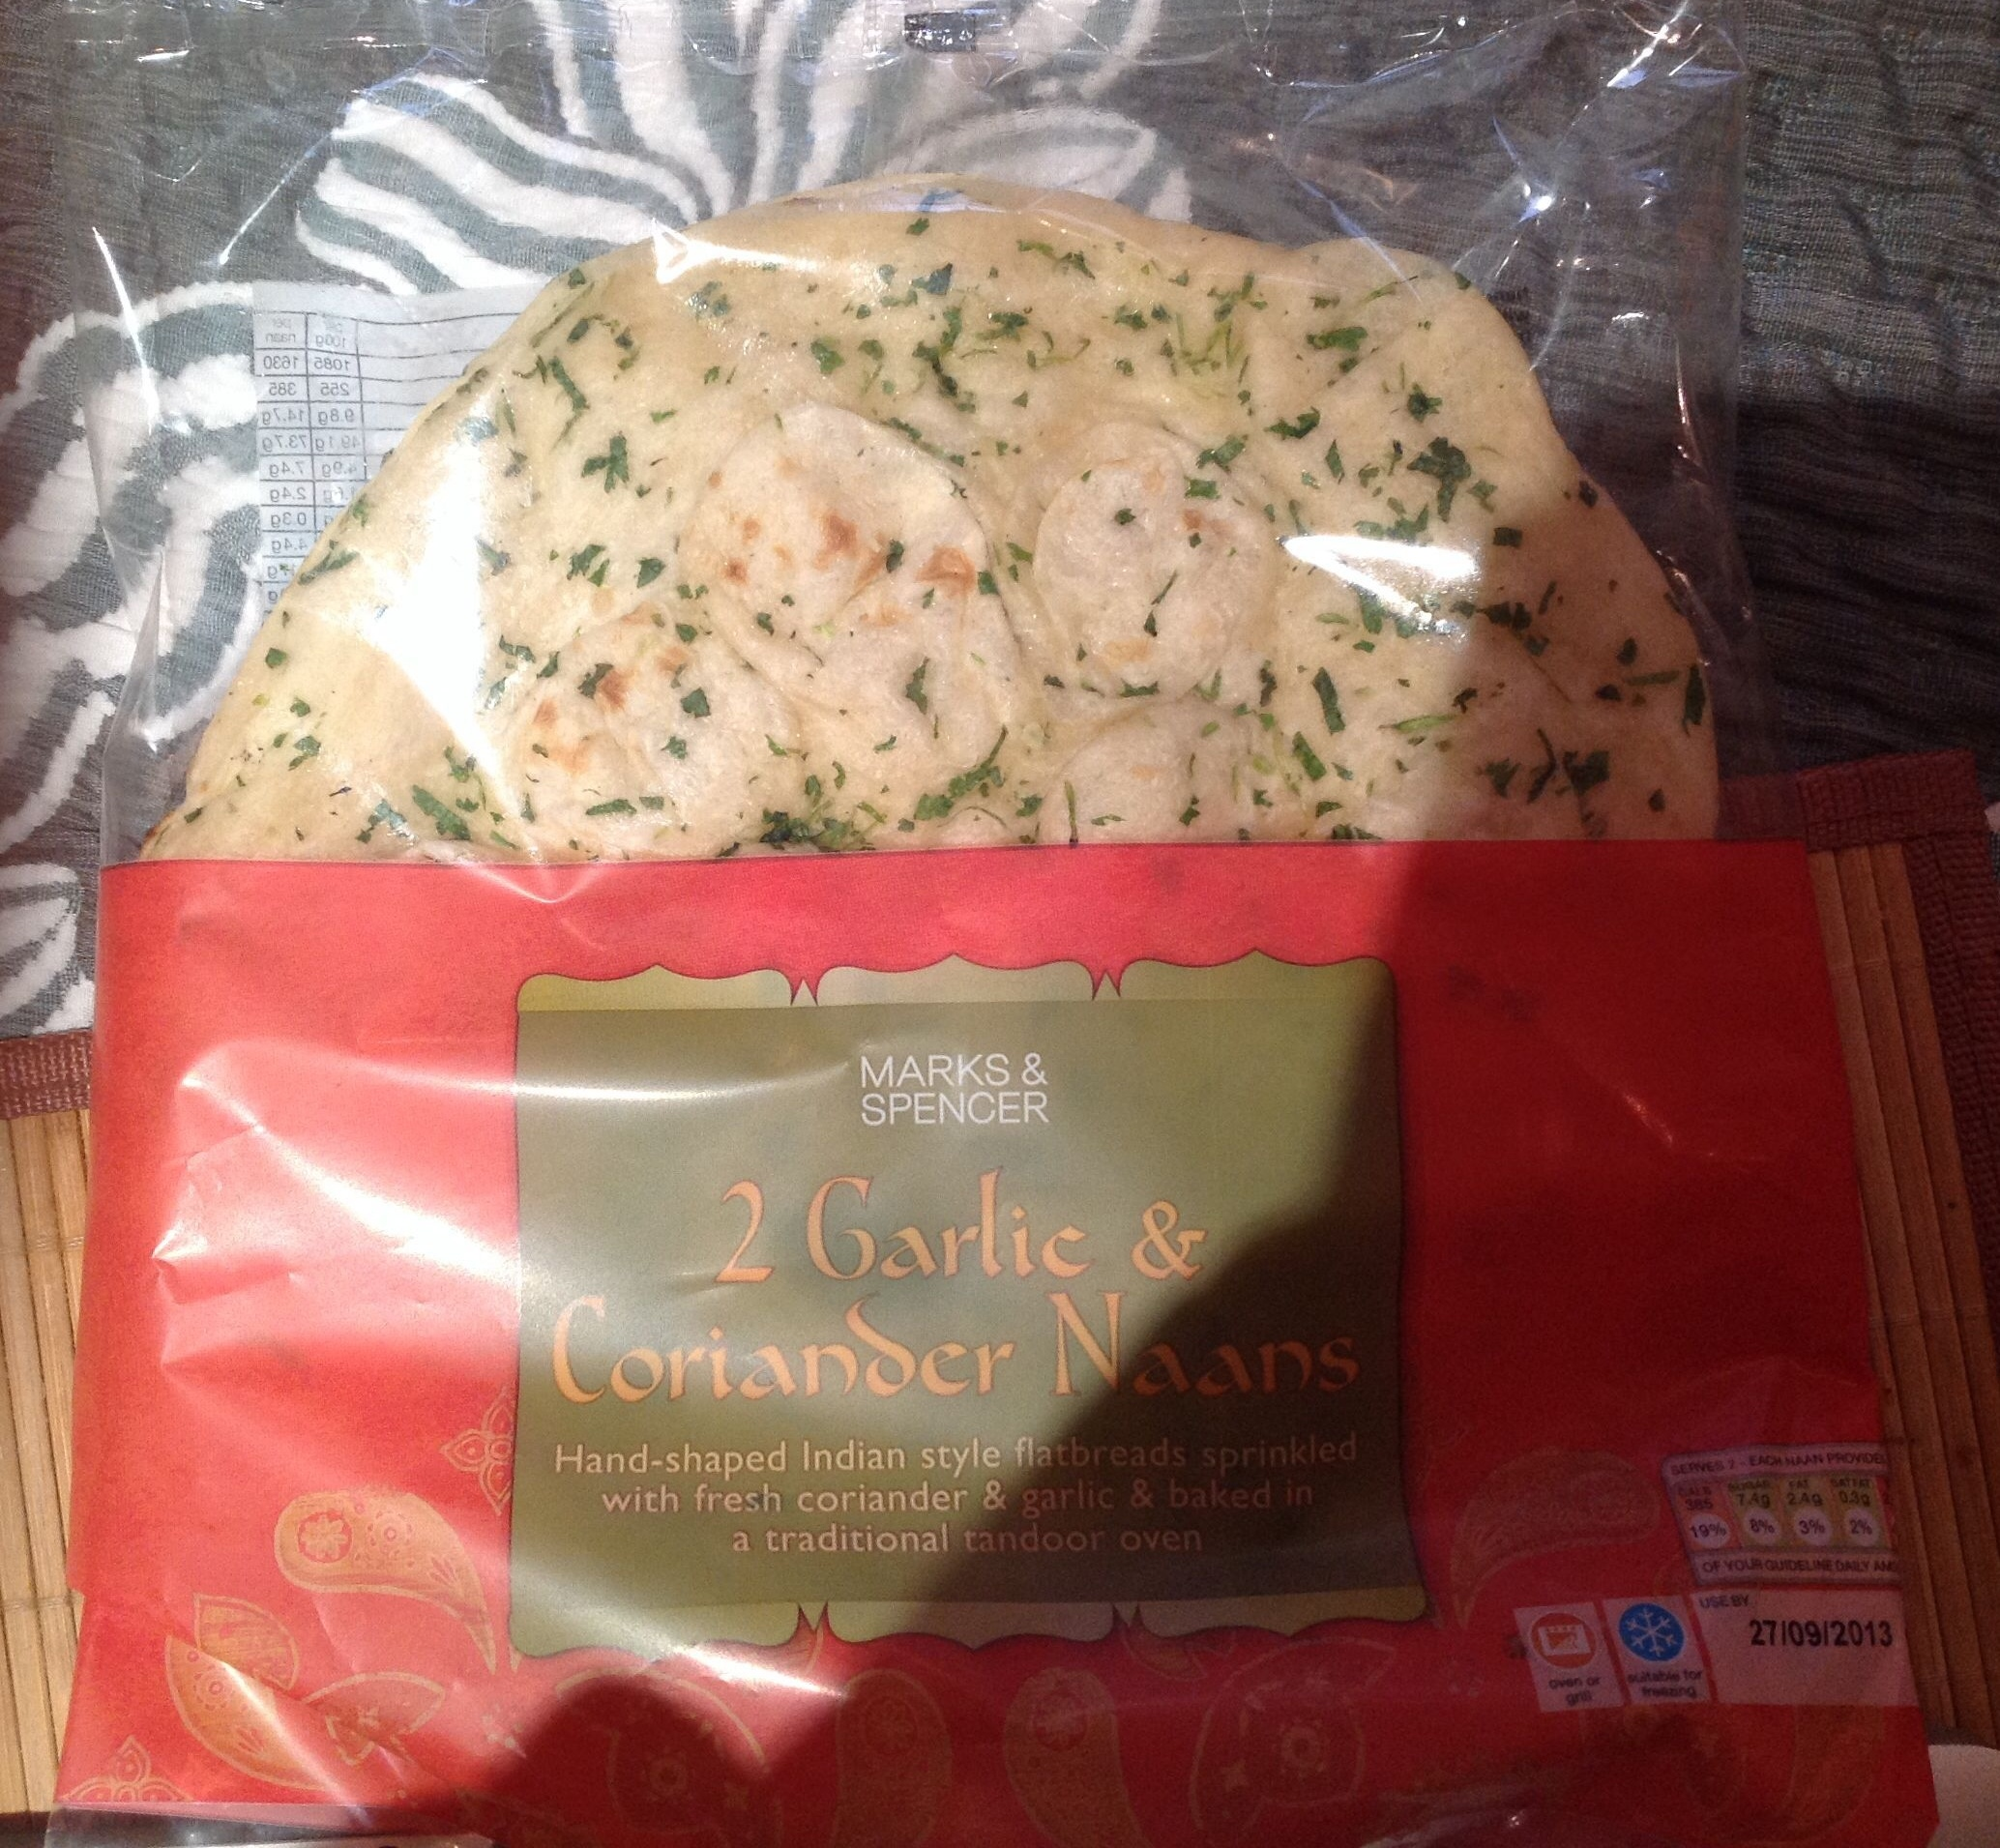 2 Large Garlic and Coriander Naans - Product